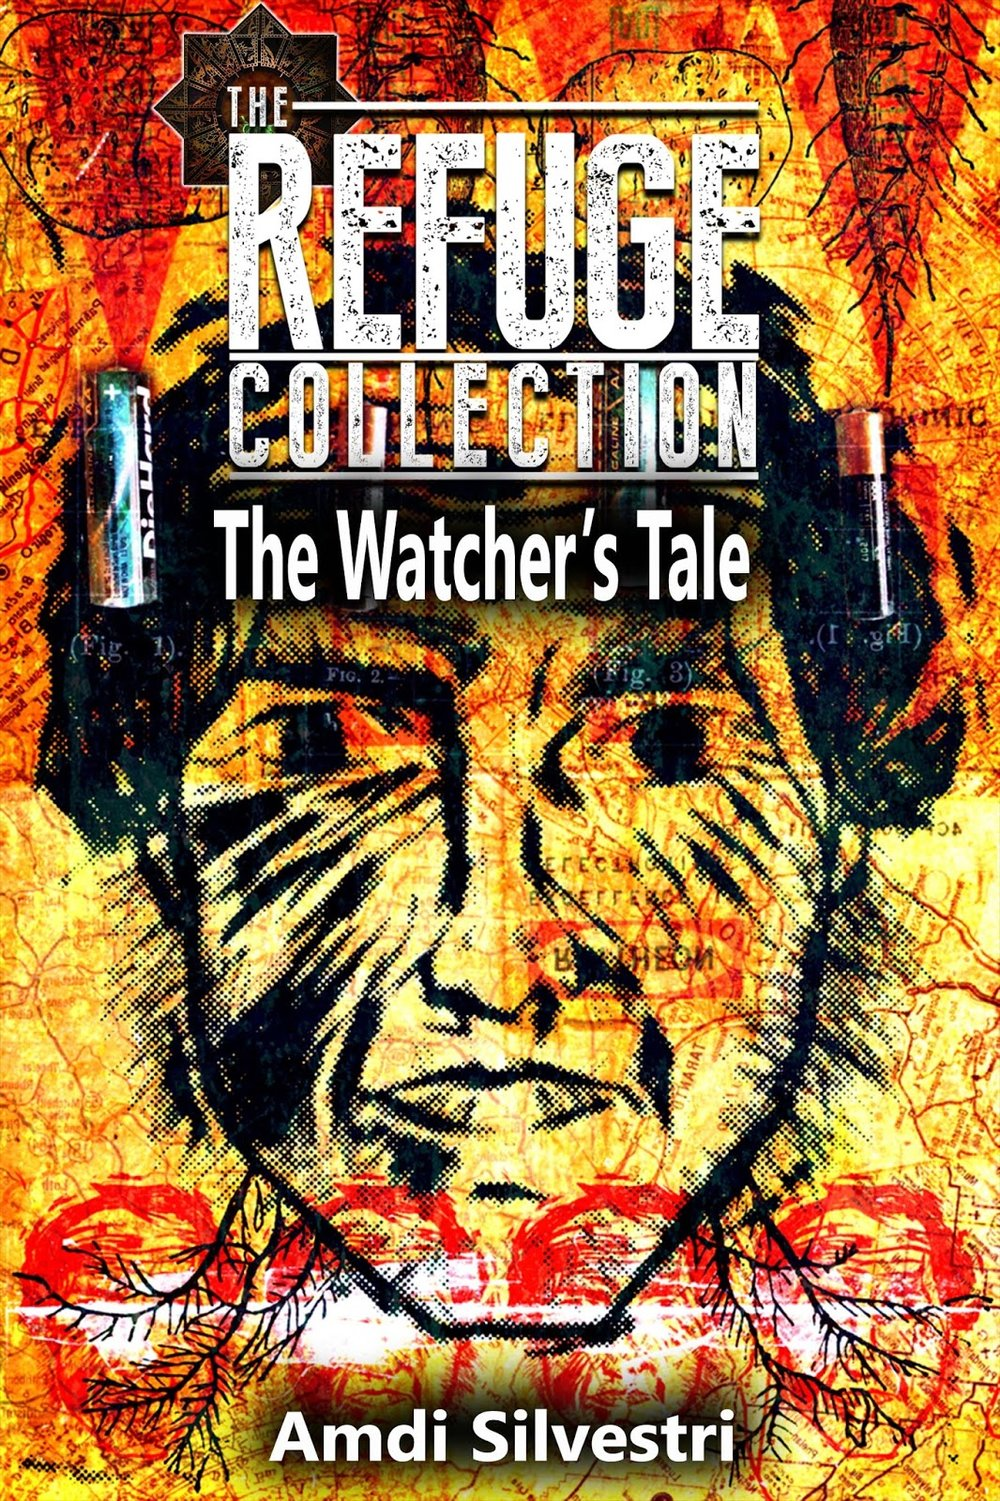 Den originale forside til The Watcher's Tale, der blev skrevet til det australske shared world-koncept The Refuge Collection. Kunstner: Chris Roberts